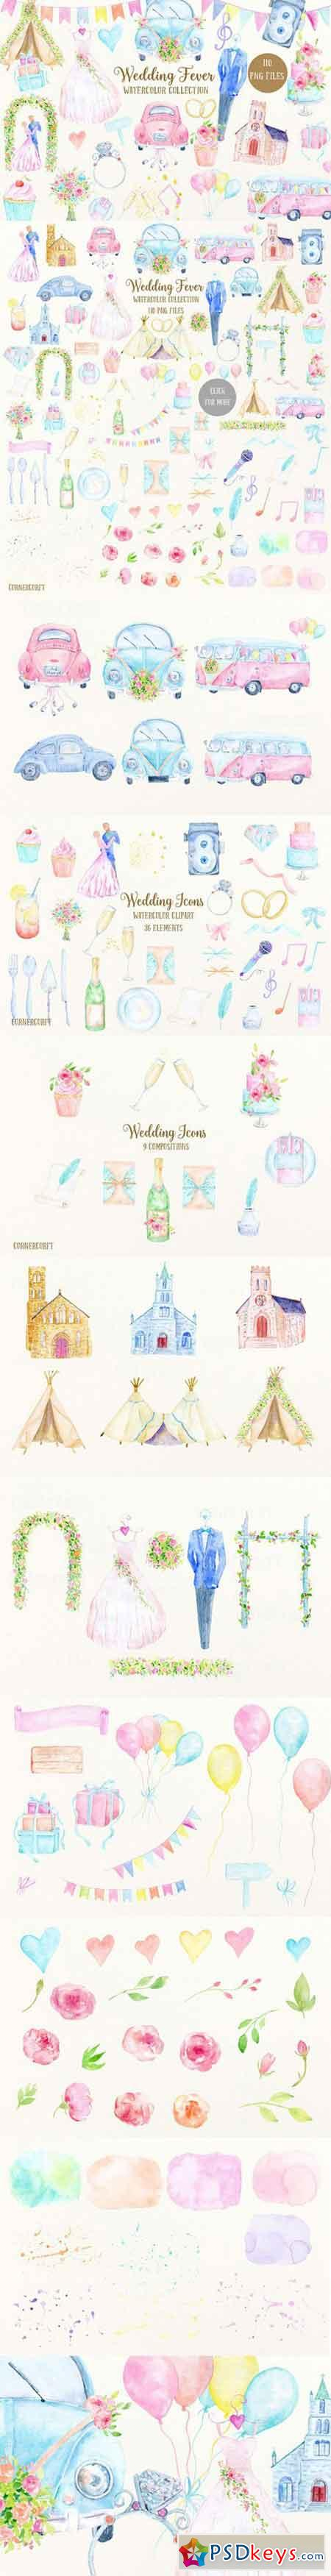 Watercolor Collection Wedding Fever 809001